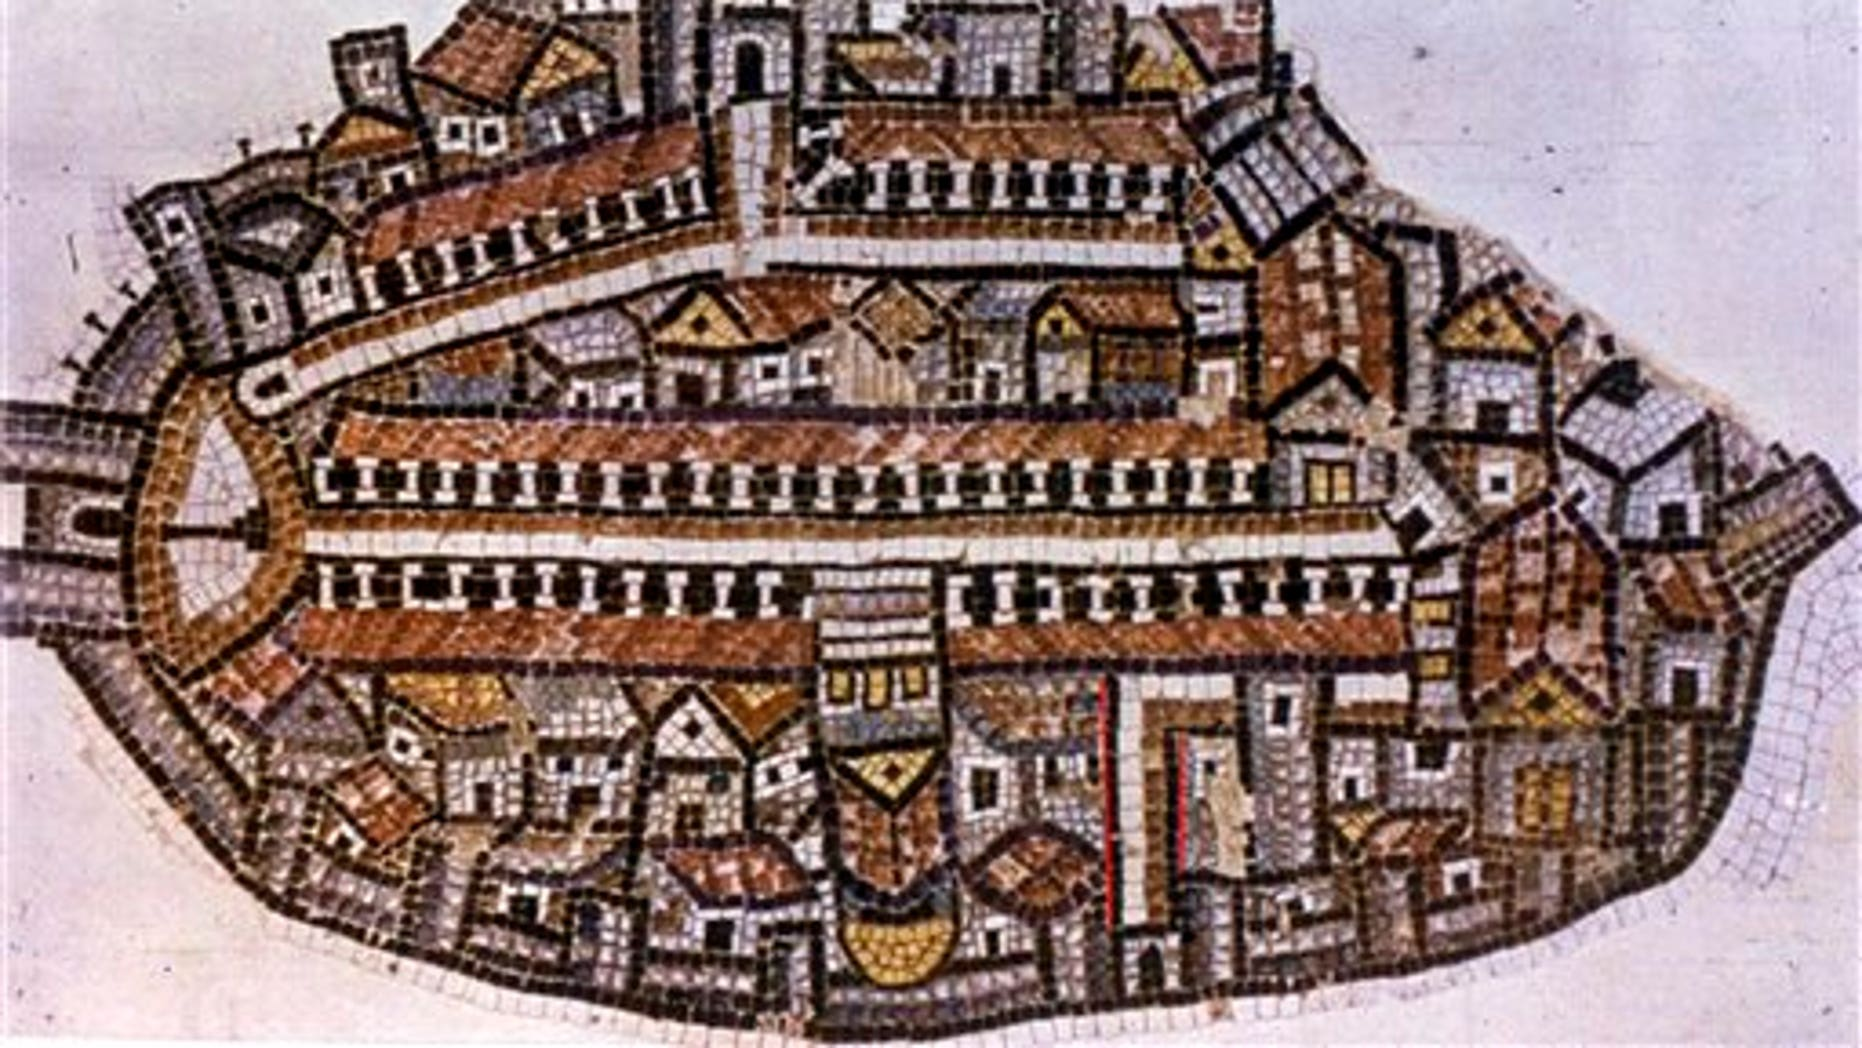 The Madaba map that was found in a Jordanian church is seen, with red marks placed in the area representing a recently excavated Byzantine street in Jerusalem's Old City.